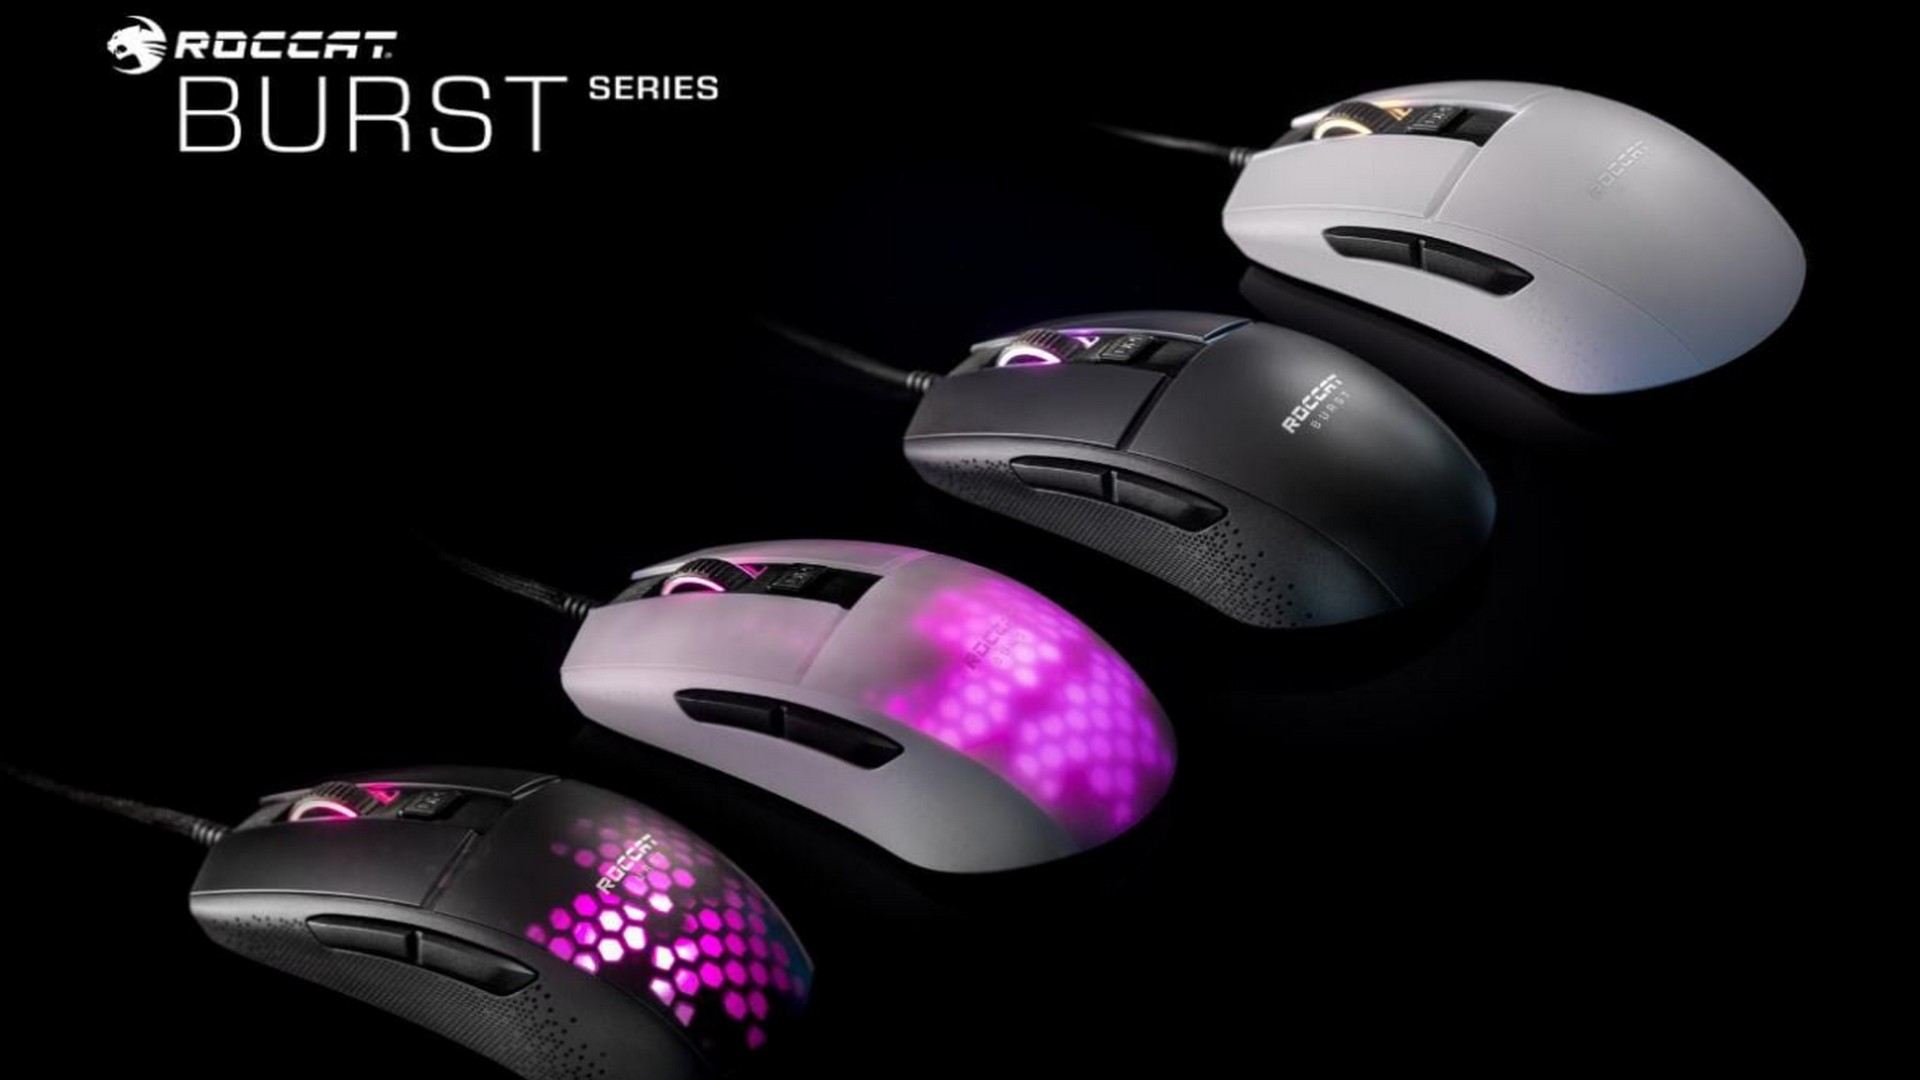 Roccat Reveals The All-New Burst Pro PC Gaming Mouse